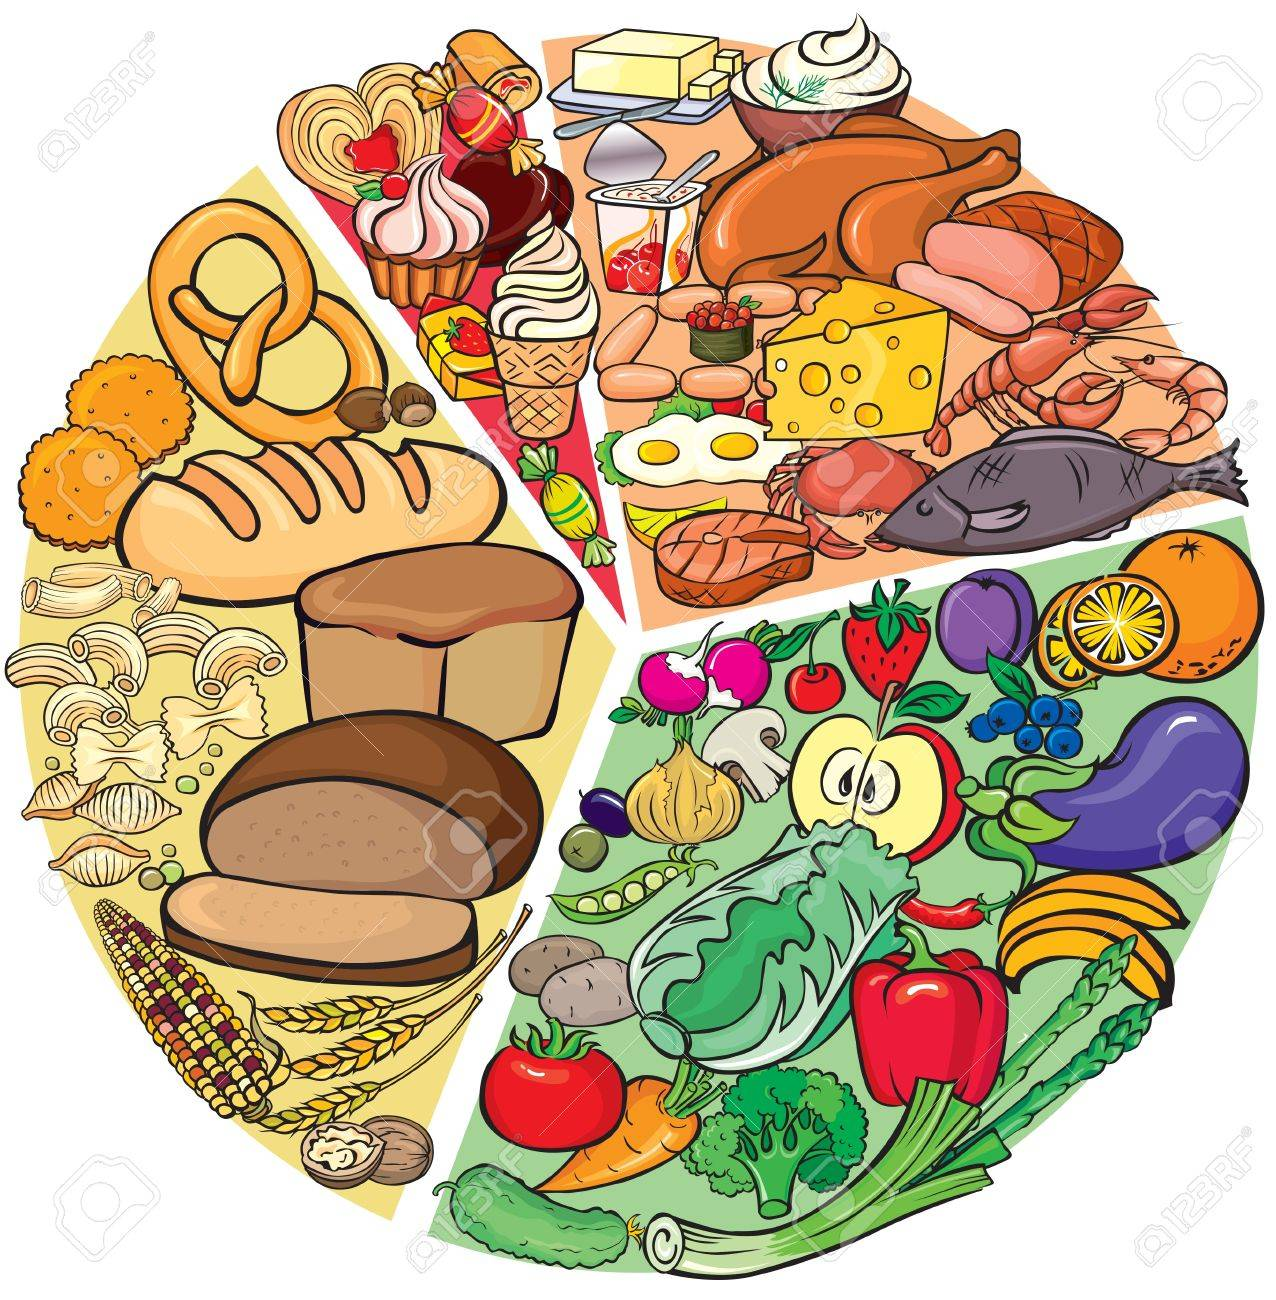 Protein Carbohydrate Diet Stock Vector - 18024252